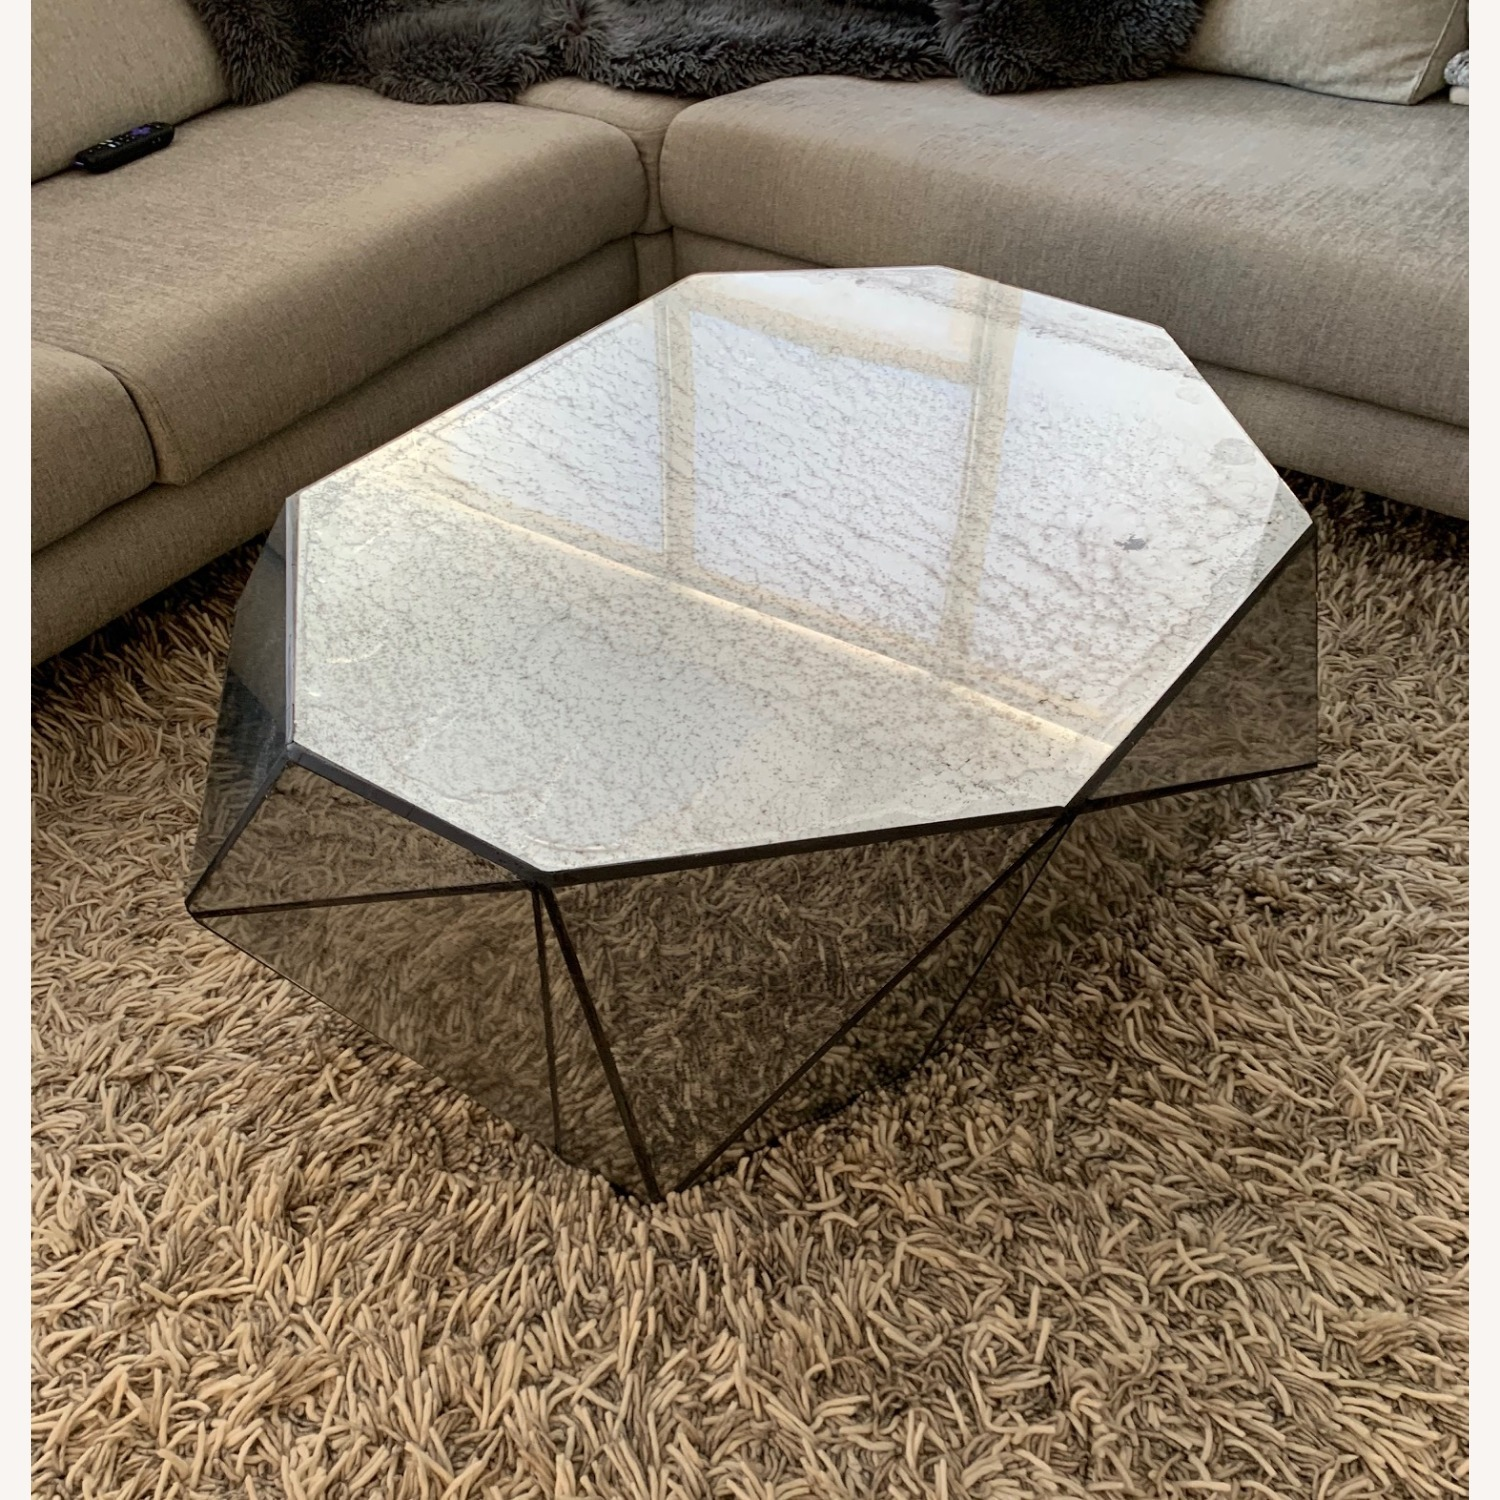 Anthropologie Modern Mirror Coffee Table - image-3